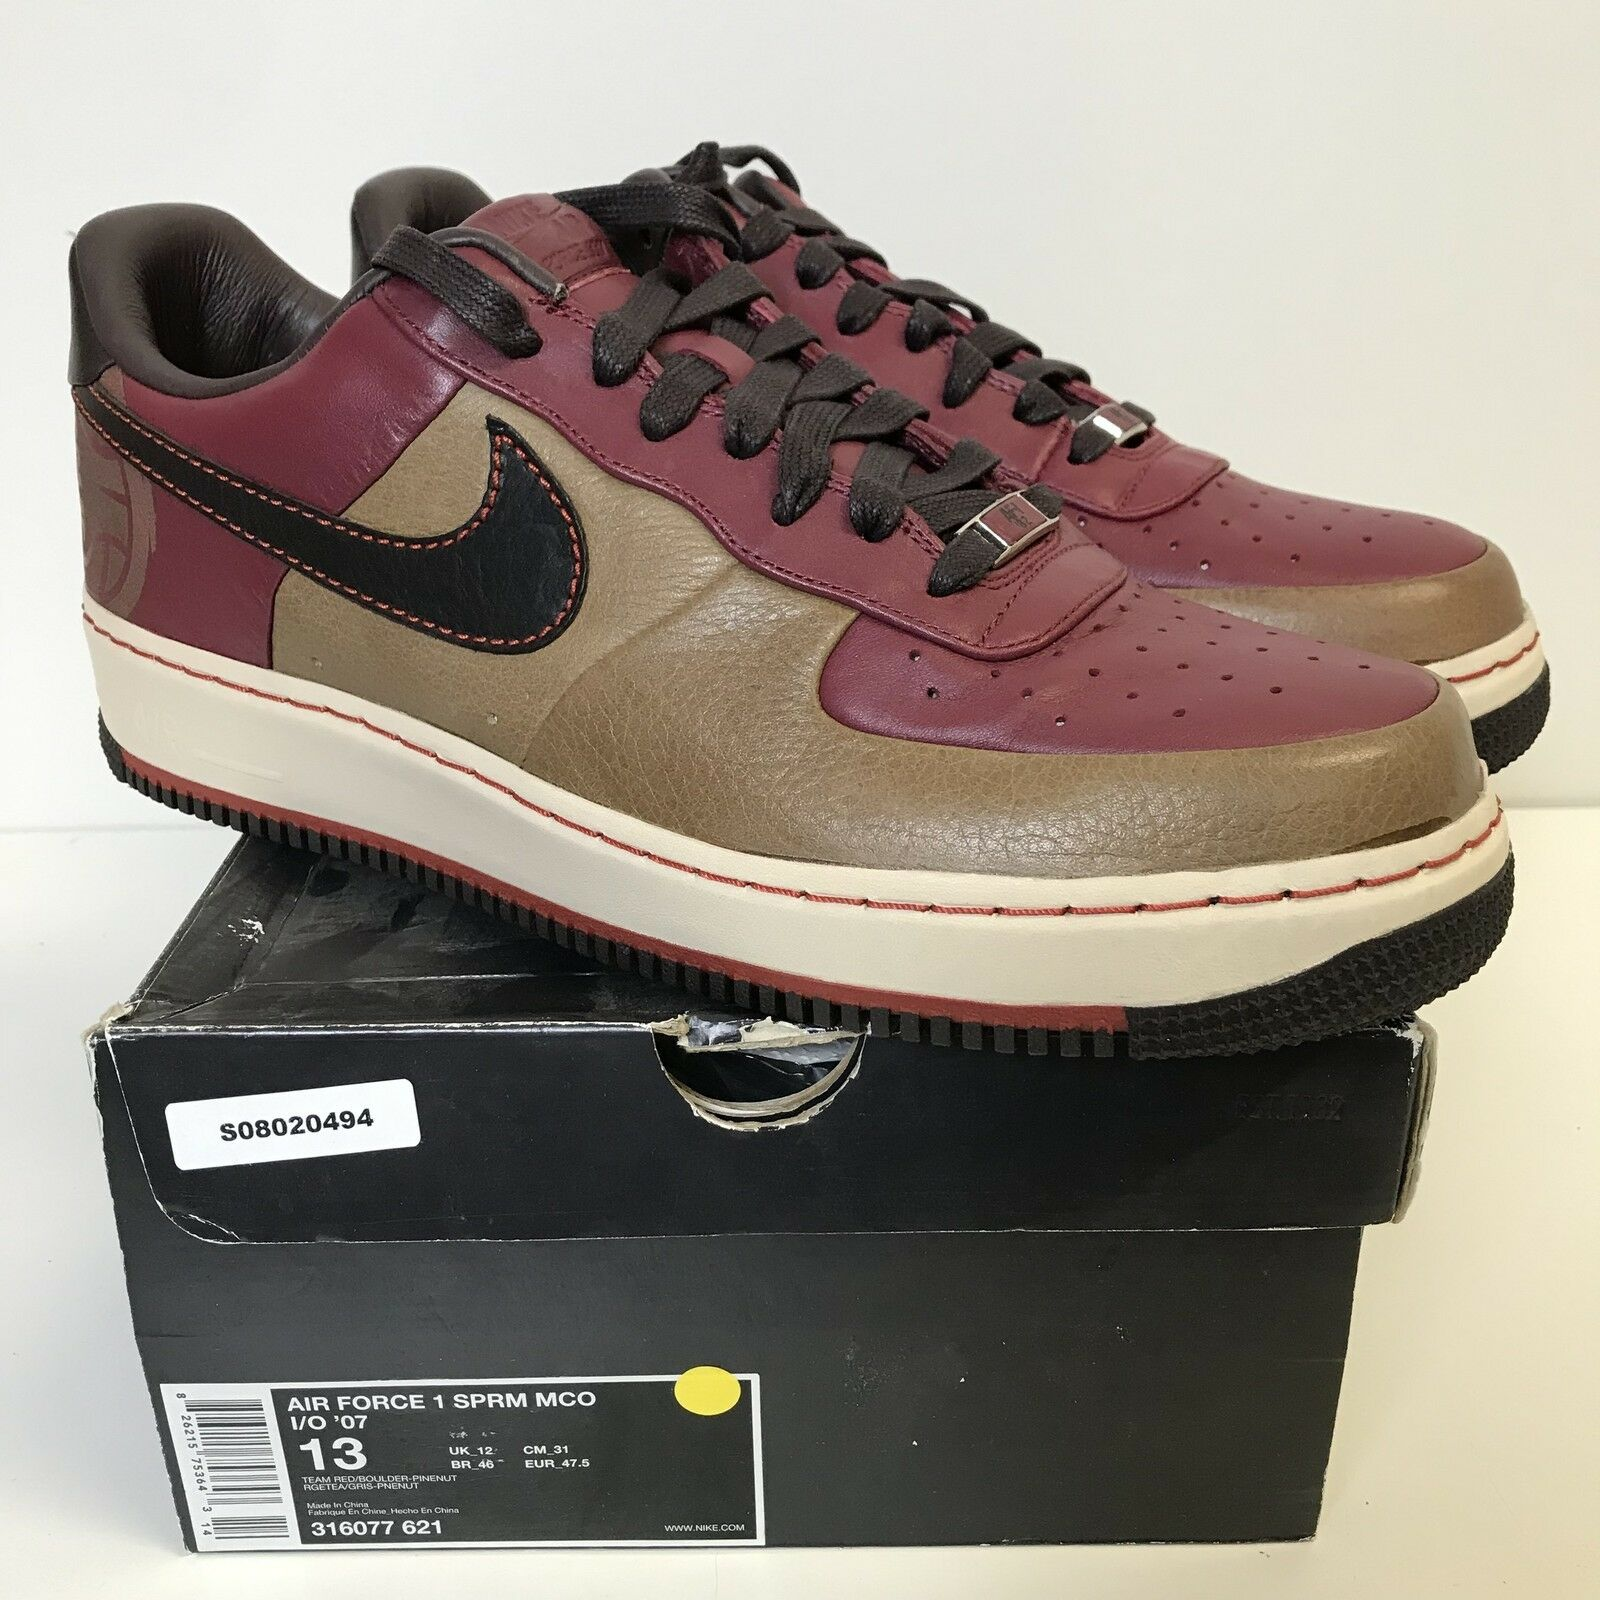 Nike Air Force 1 Supreme MCO I O '07  The Dome Baltimore  316077-621 New US 13